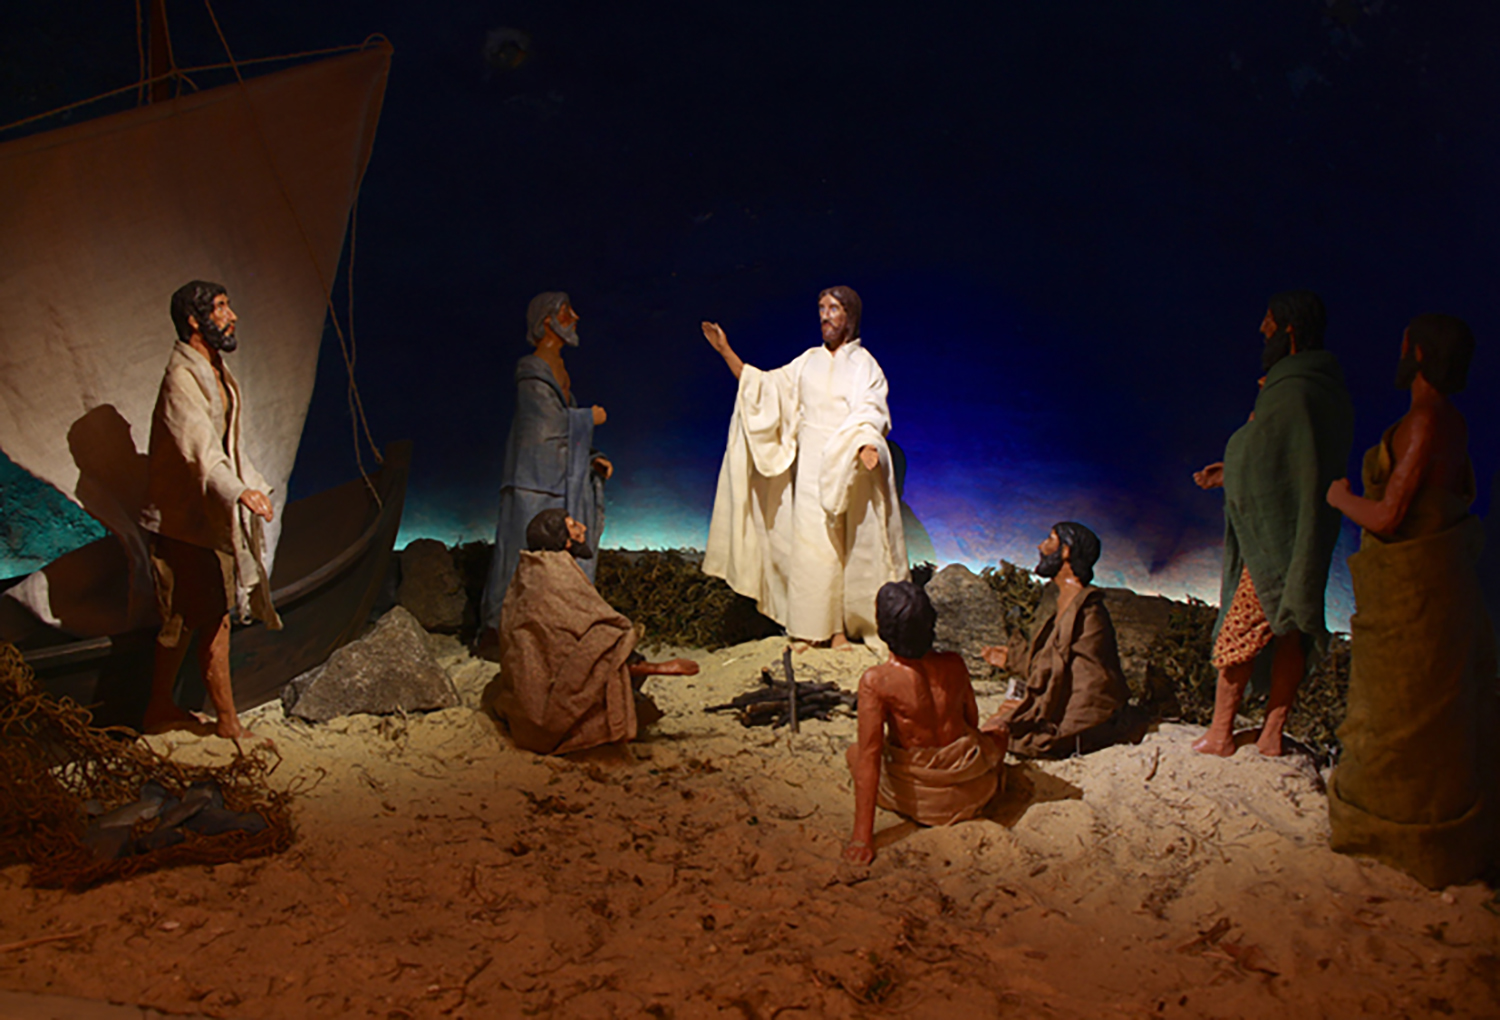 Figure 7: Jesus appears to seven of His disciples by the Sea of Galilee following His resurrection. This is the final scene in the Winfred Hyatt Easter scenes designed for the Pitcairn family in the 1920s.